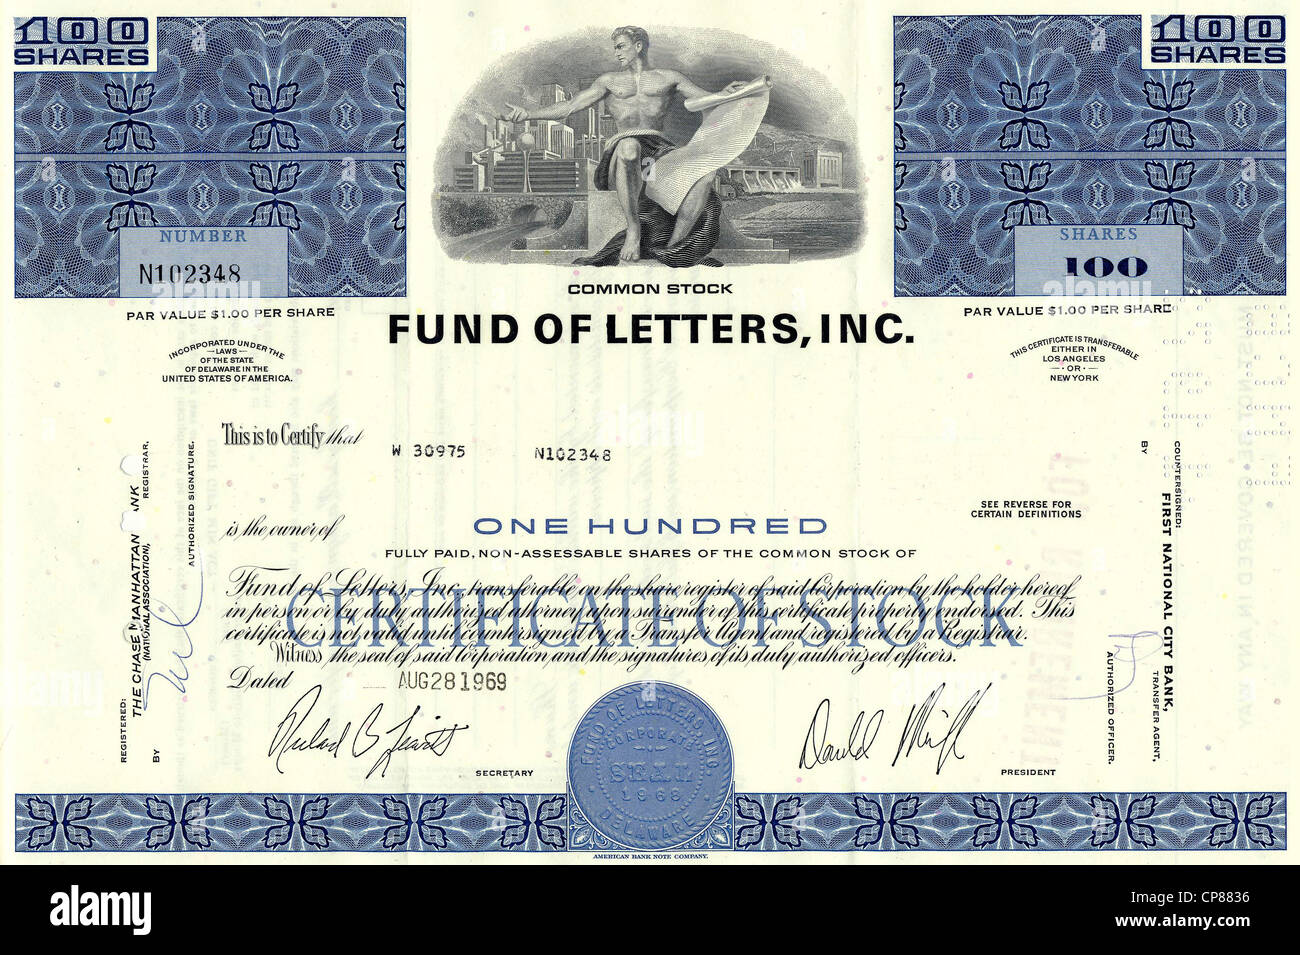 Historical stock certificate, banking and finance sector, Fund of Letters, Inc., 1969, Los Angeles, California, - Stock Image